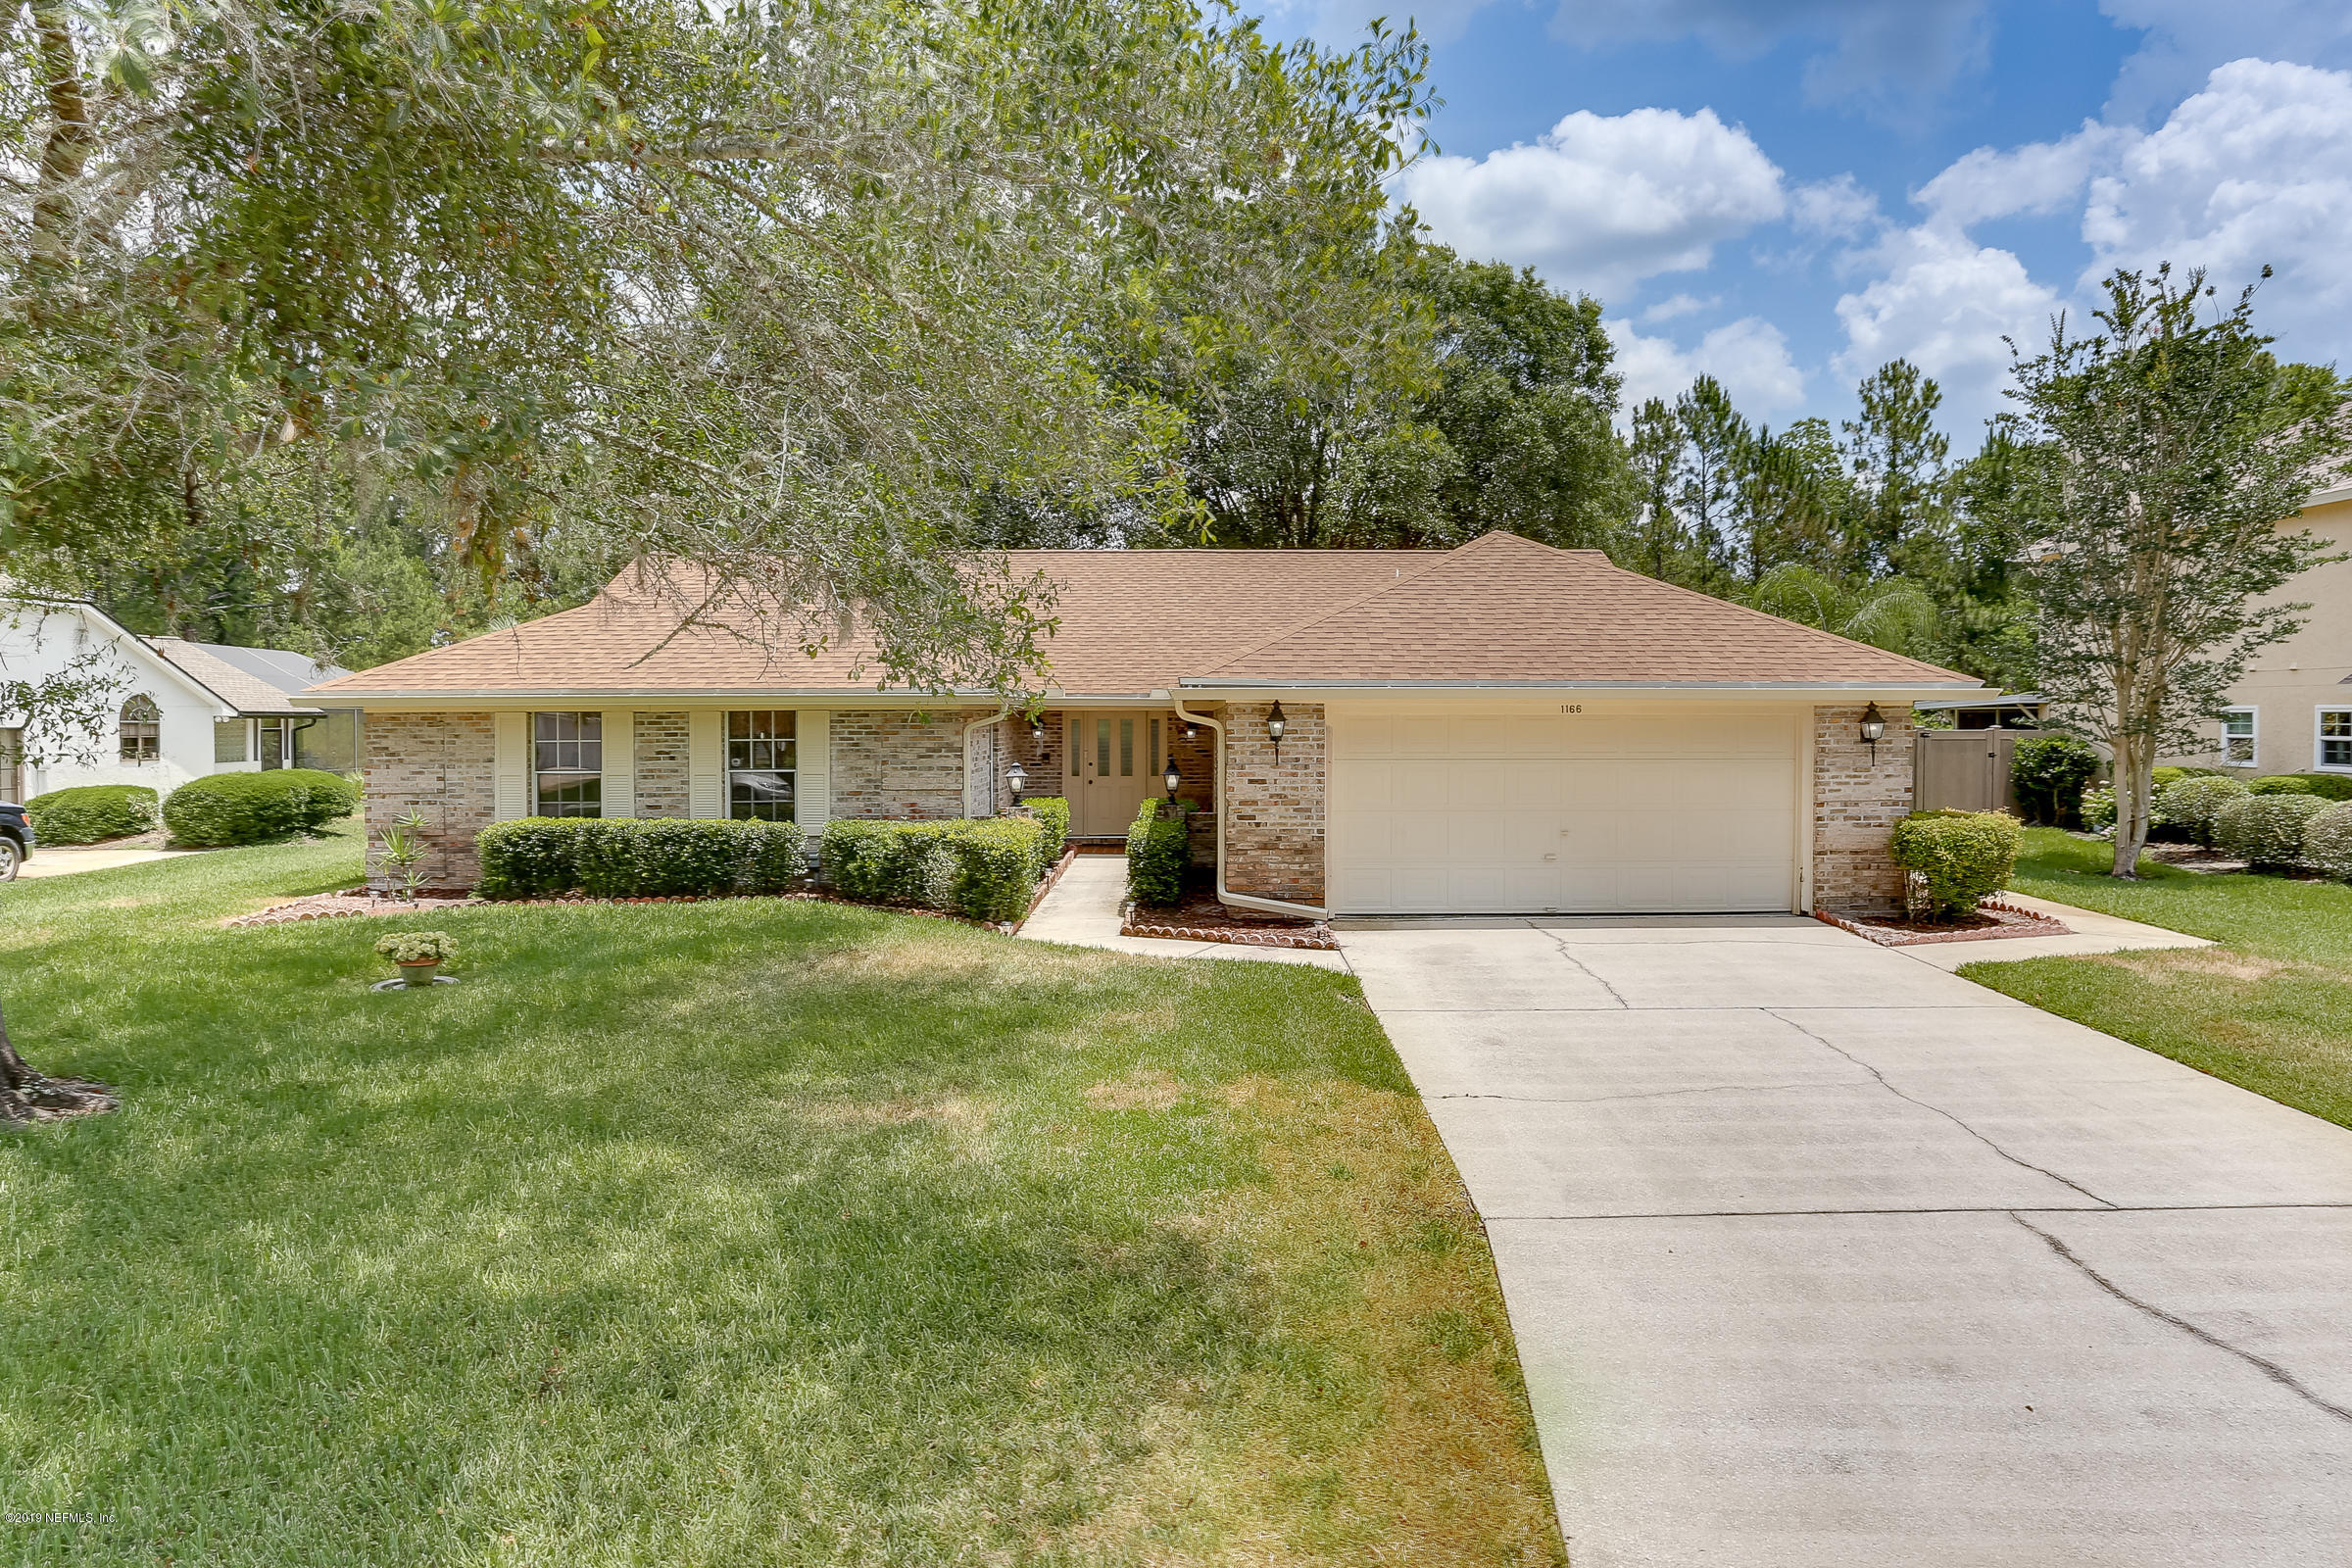 1166 LINWOOD, ST JOHNS, FLORIDA 32259, 3 Bedrooms Bedrooms, ,2 BathroomsBathrooms,Residential - single family,For sale,LINWOOD,999496